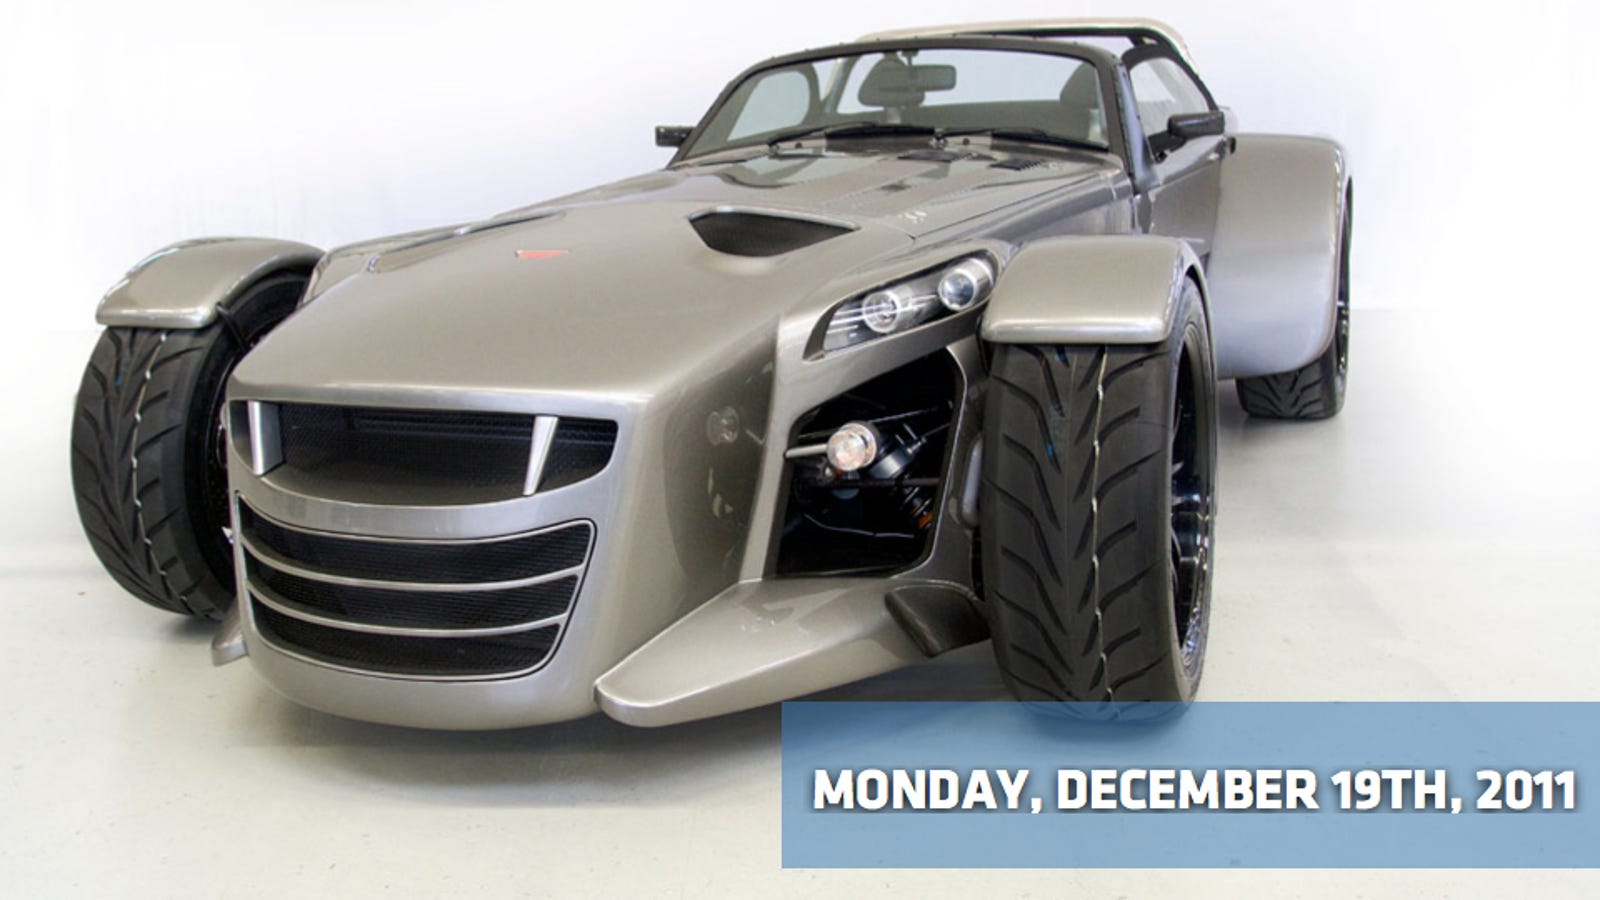 saab files for bankruptcy the 2013 chevy sonic rs and the delicious donkervoort d8 gto. Black Bedroom Furniture Sets. Home Design Ideas